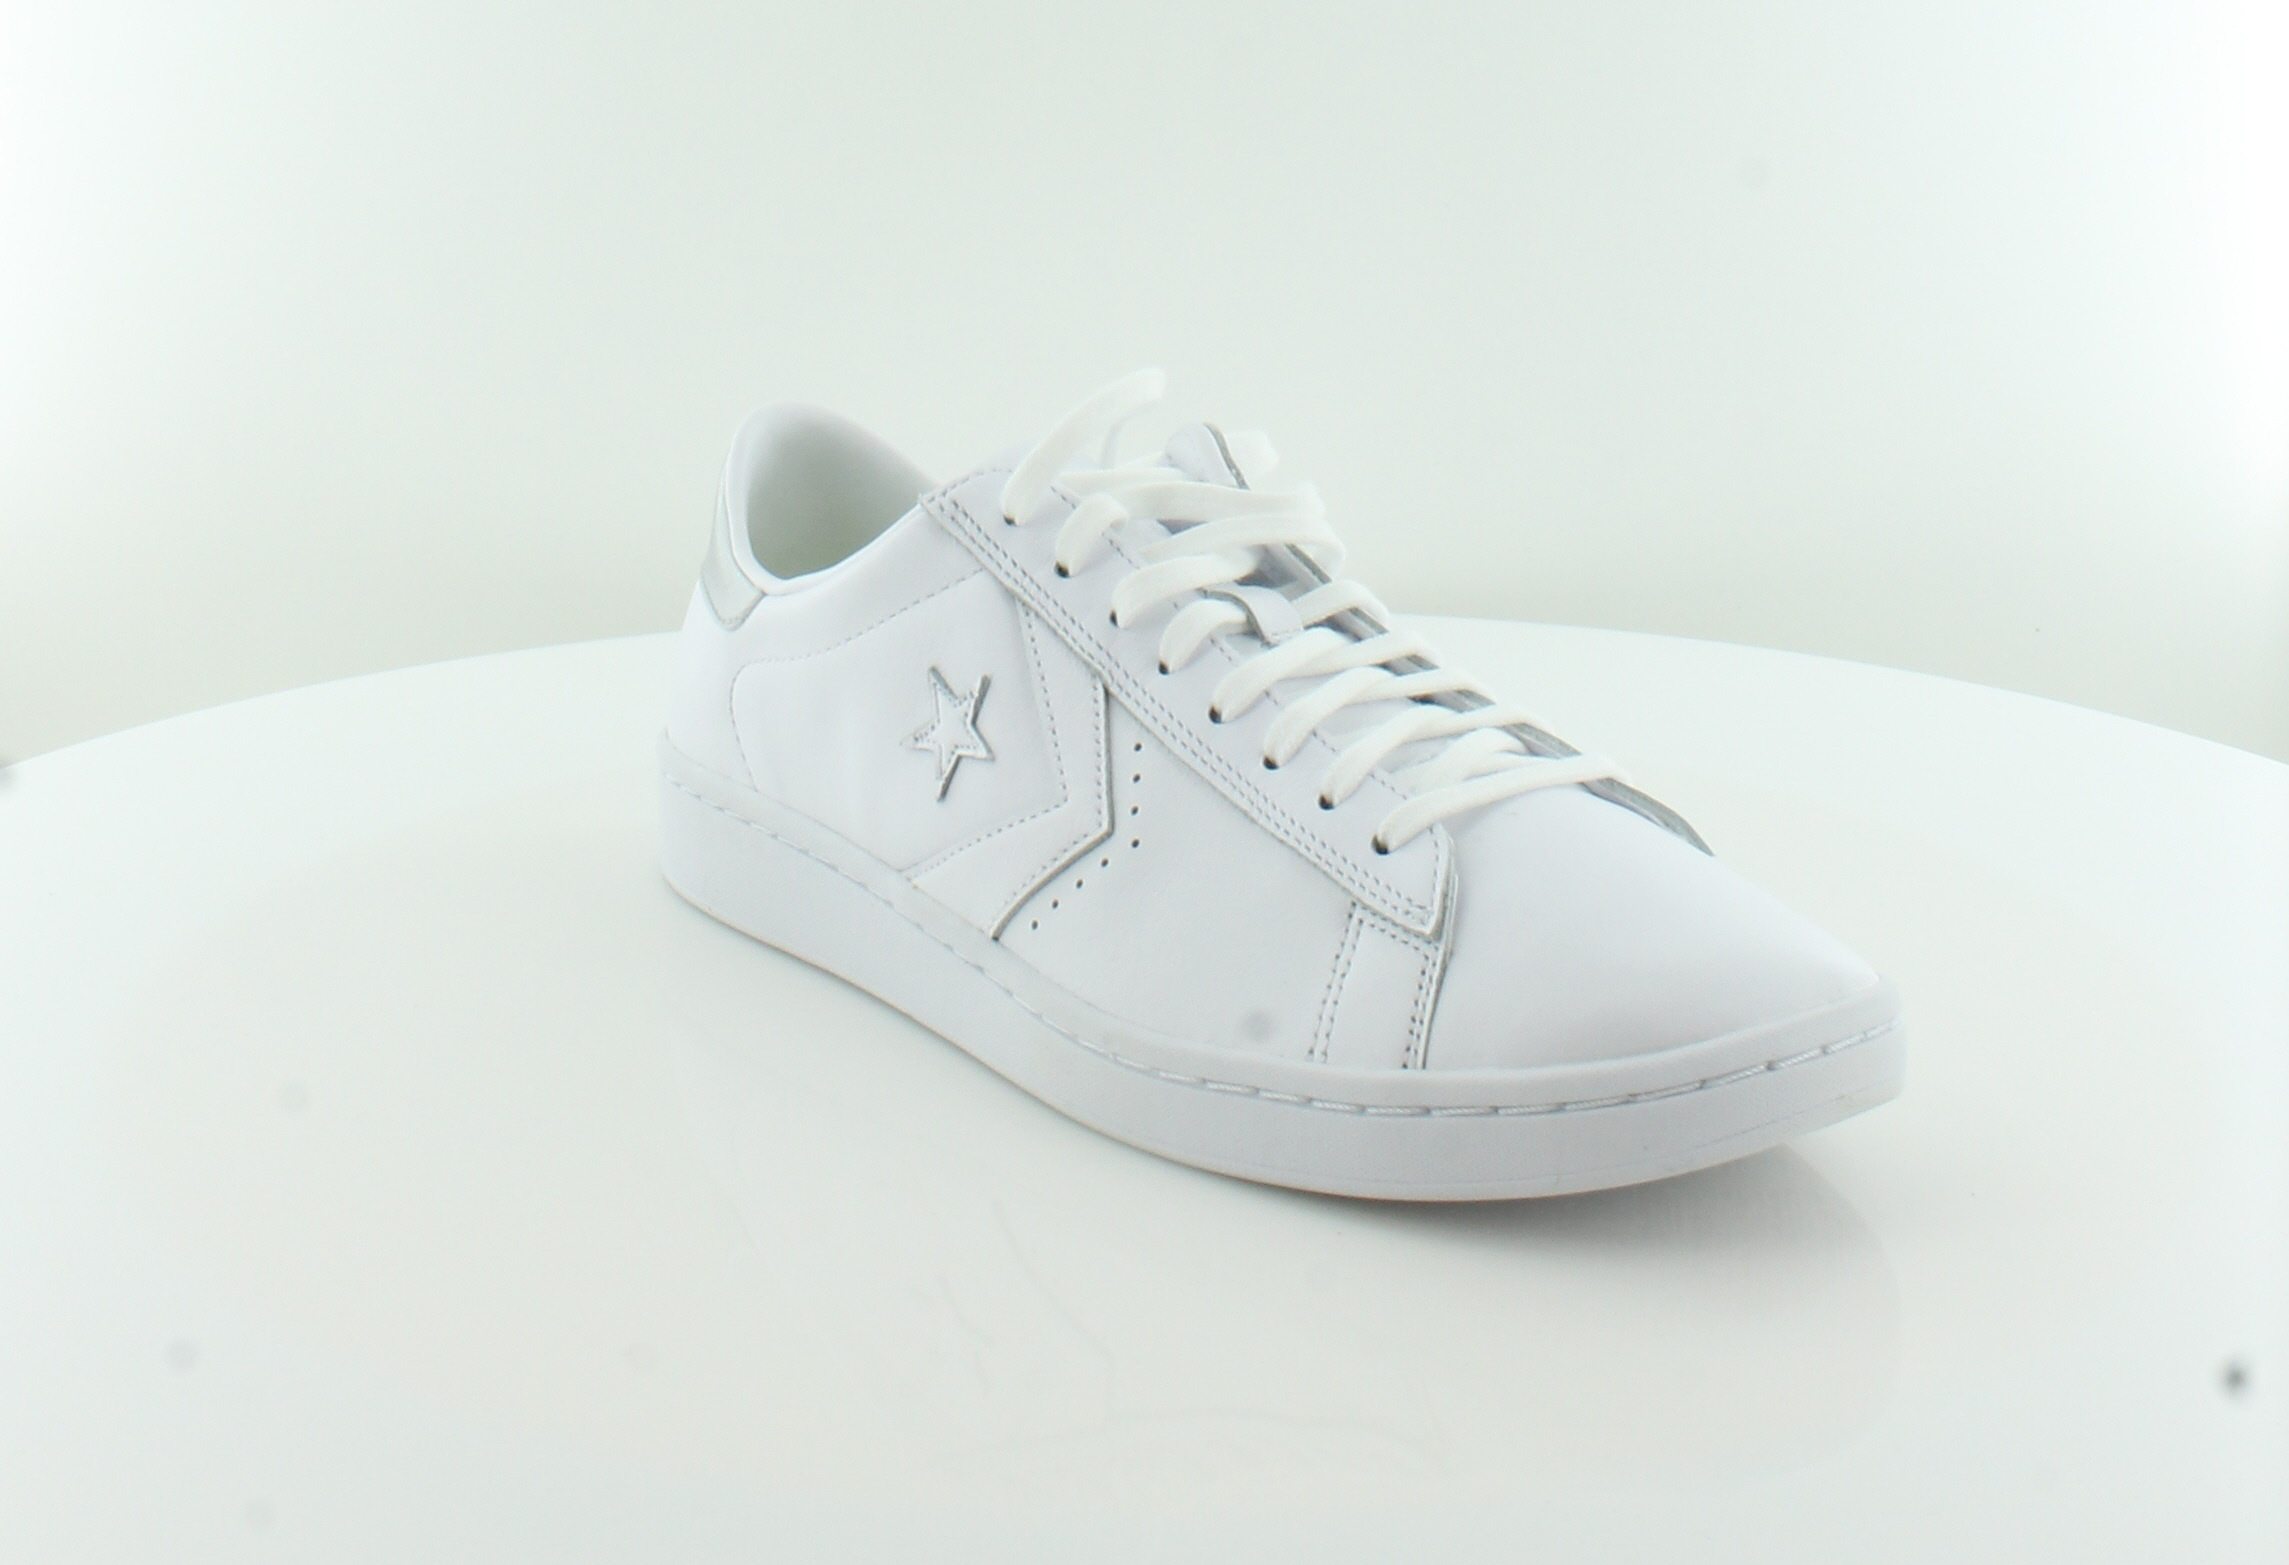 c11bb53a592c Converse New Pl Lp Ox White Womens Shoes Size 11 M Fashion Sneakers MSRP   80 4 4 of 5 ...